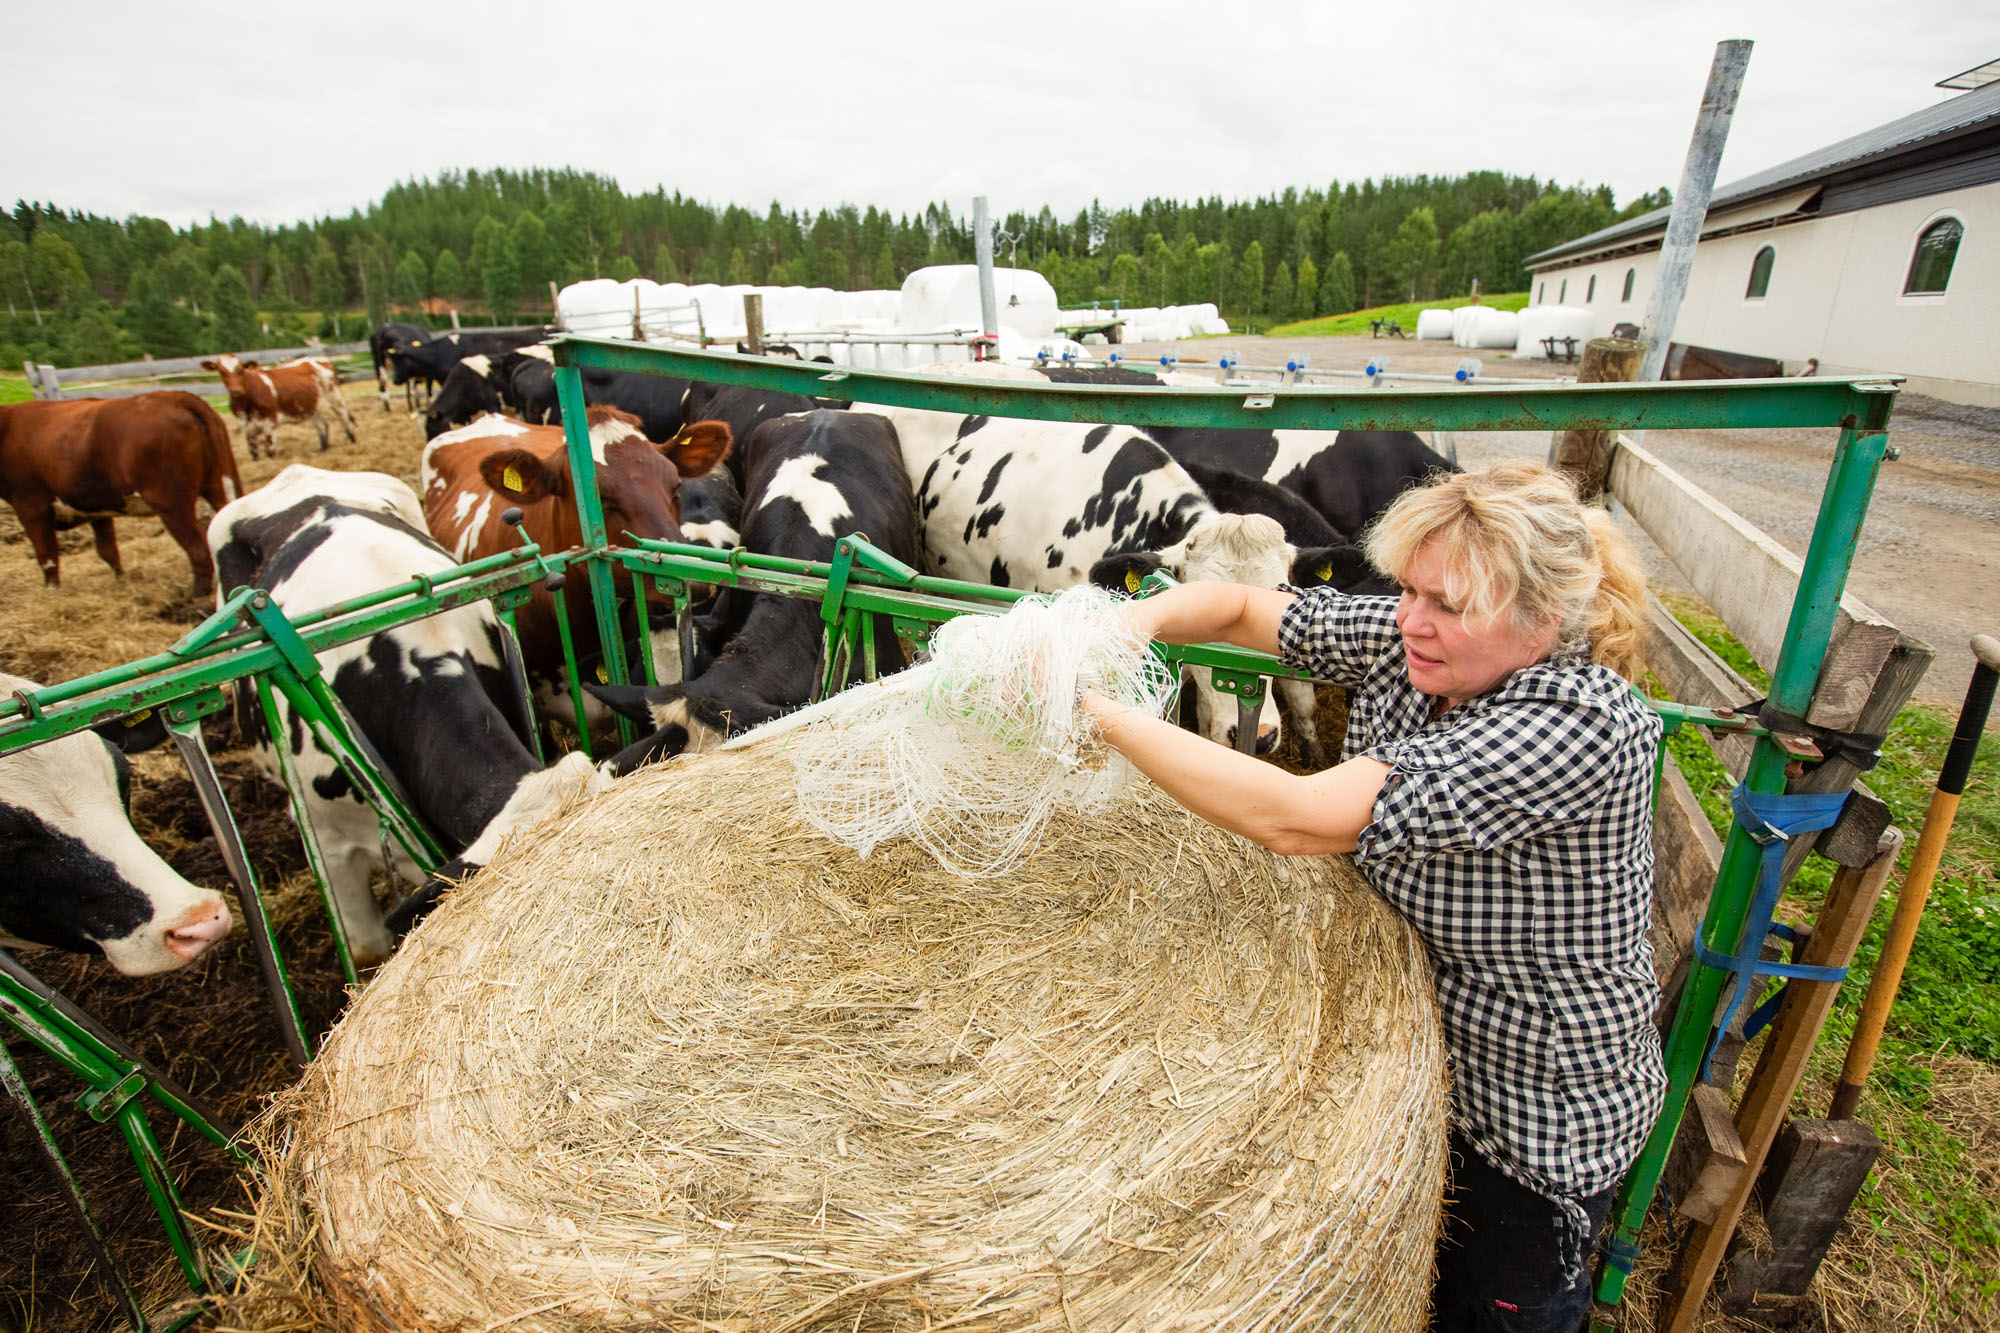 Feeding heifers in the heifer pasture. - Photo: Patrick Degerman, www.degerman.se